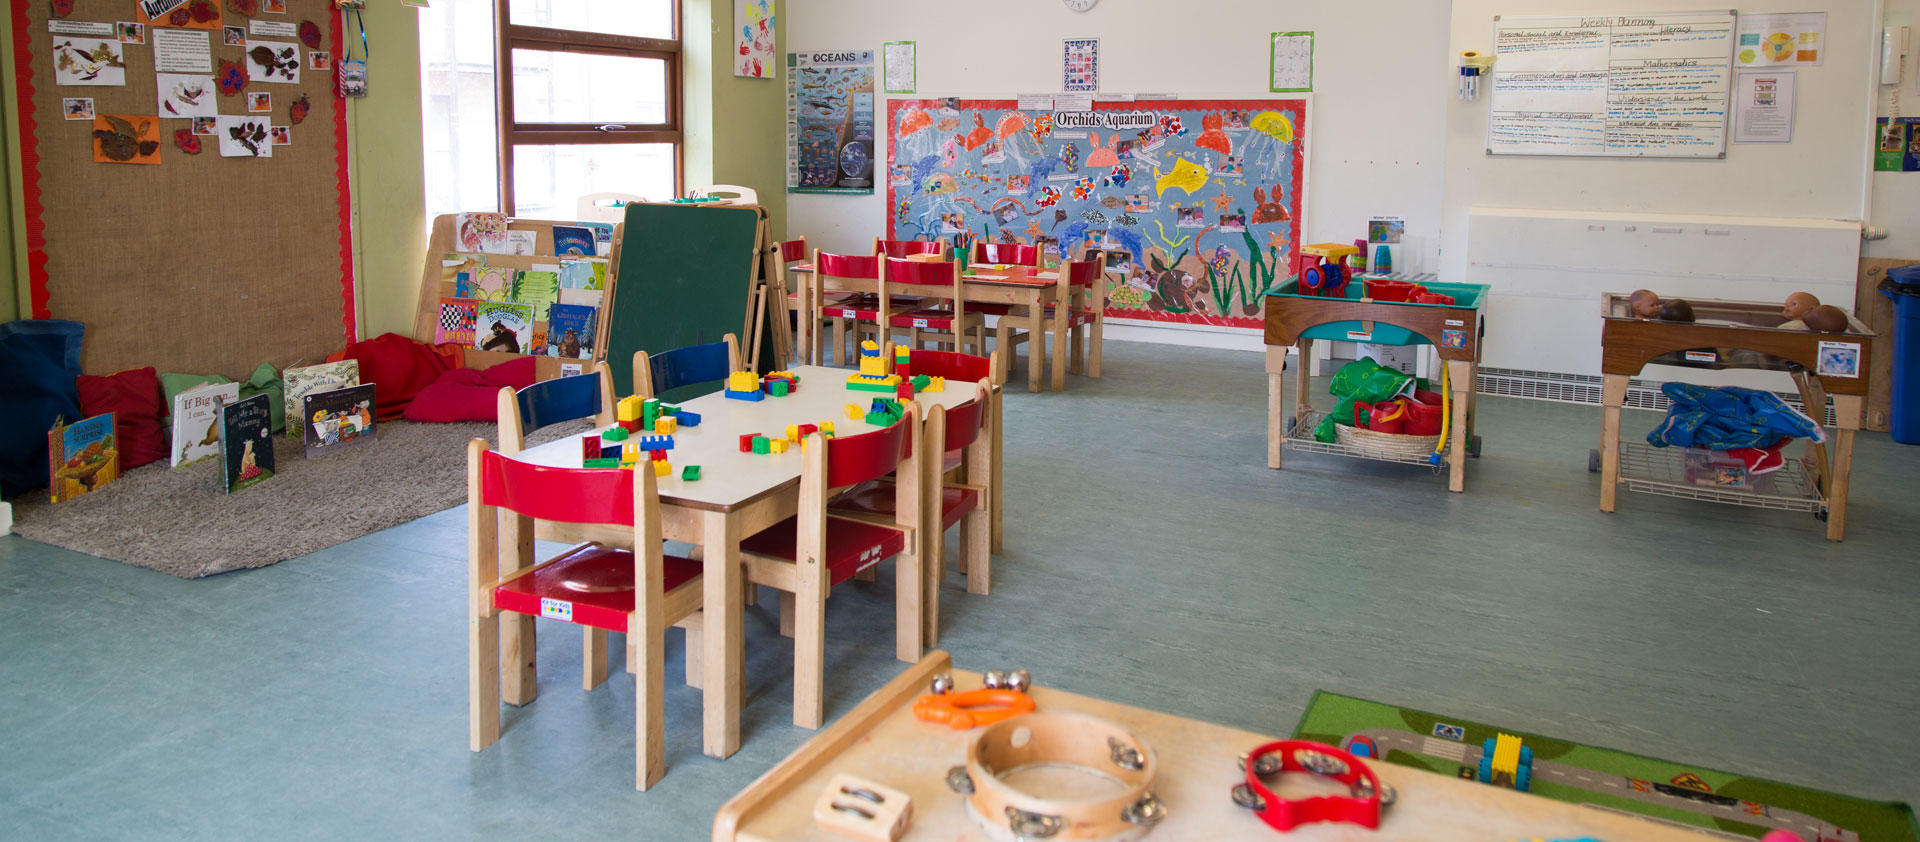 Bright Horizons Wembley Day Nursery and Preschool Greater London 03339 207522